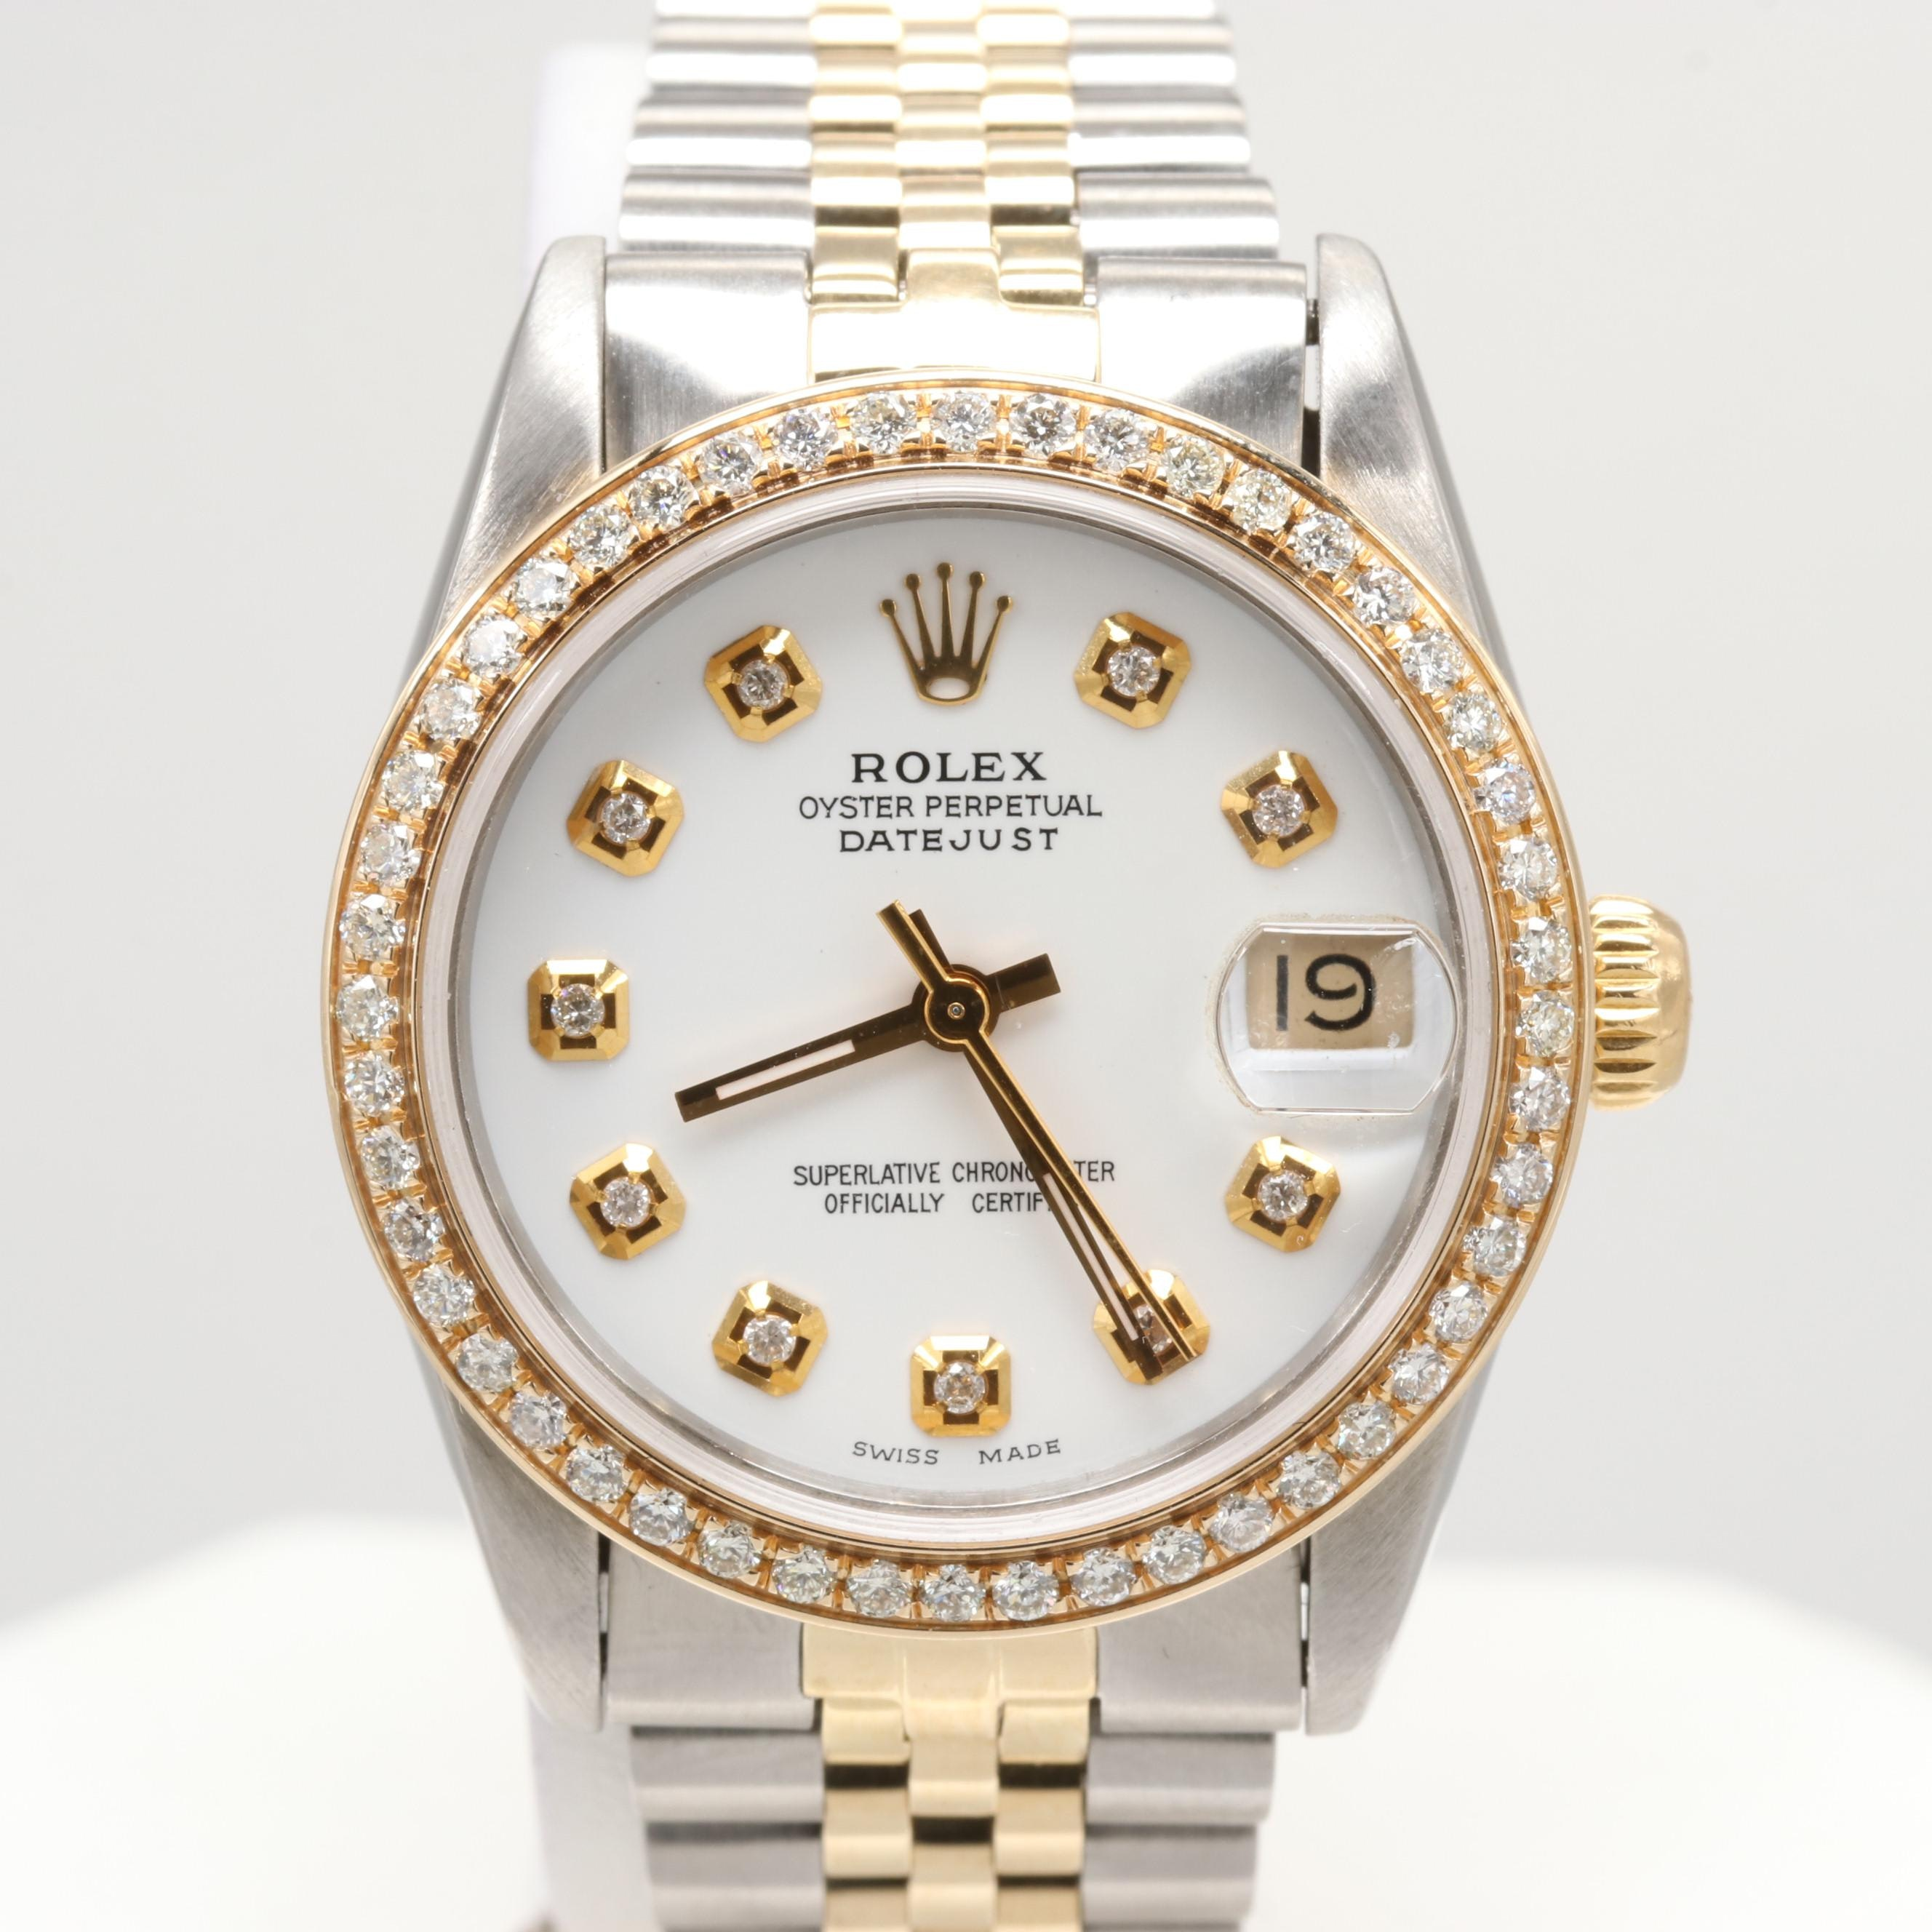 Rolex Datejust 18K Yellow Gold and Stainless Steel Wristwatch With Diamonds,1986